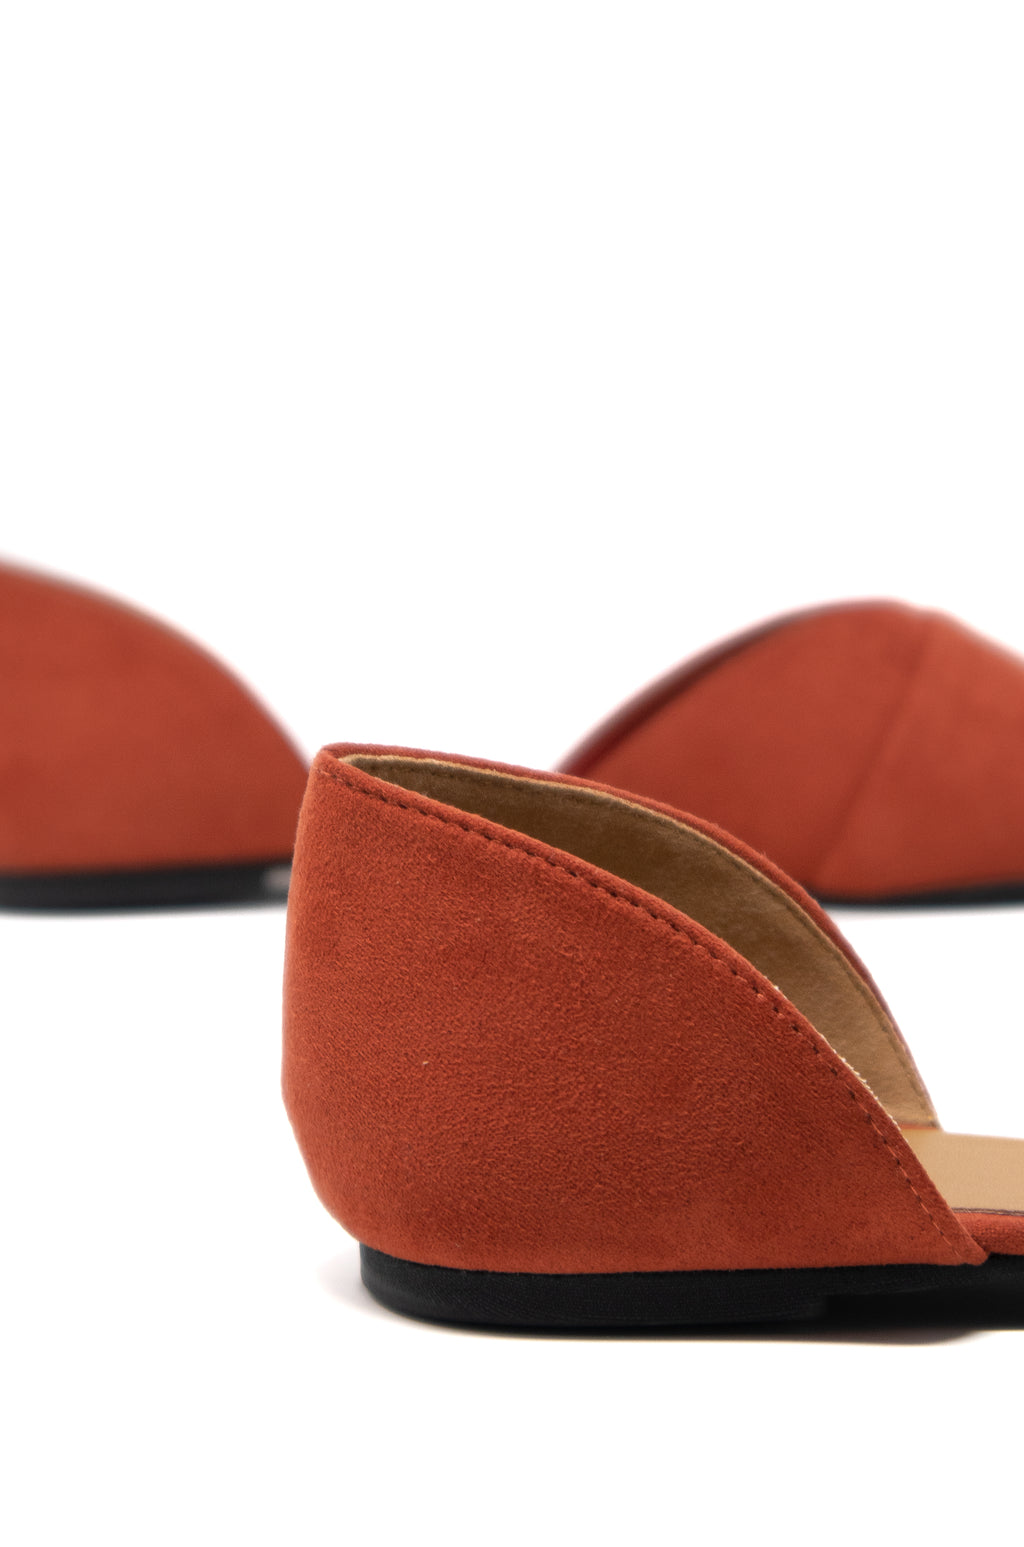 Meant To Be - Brick D'Orsay Flats